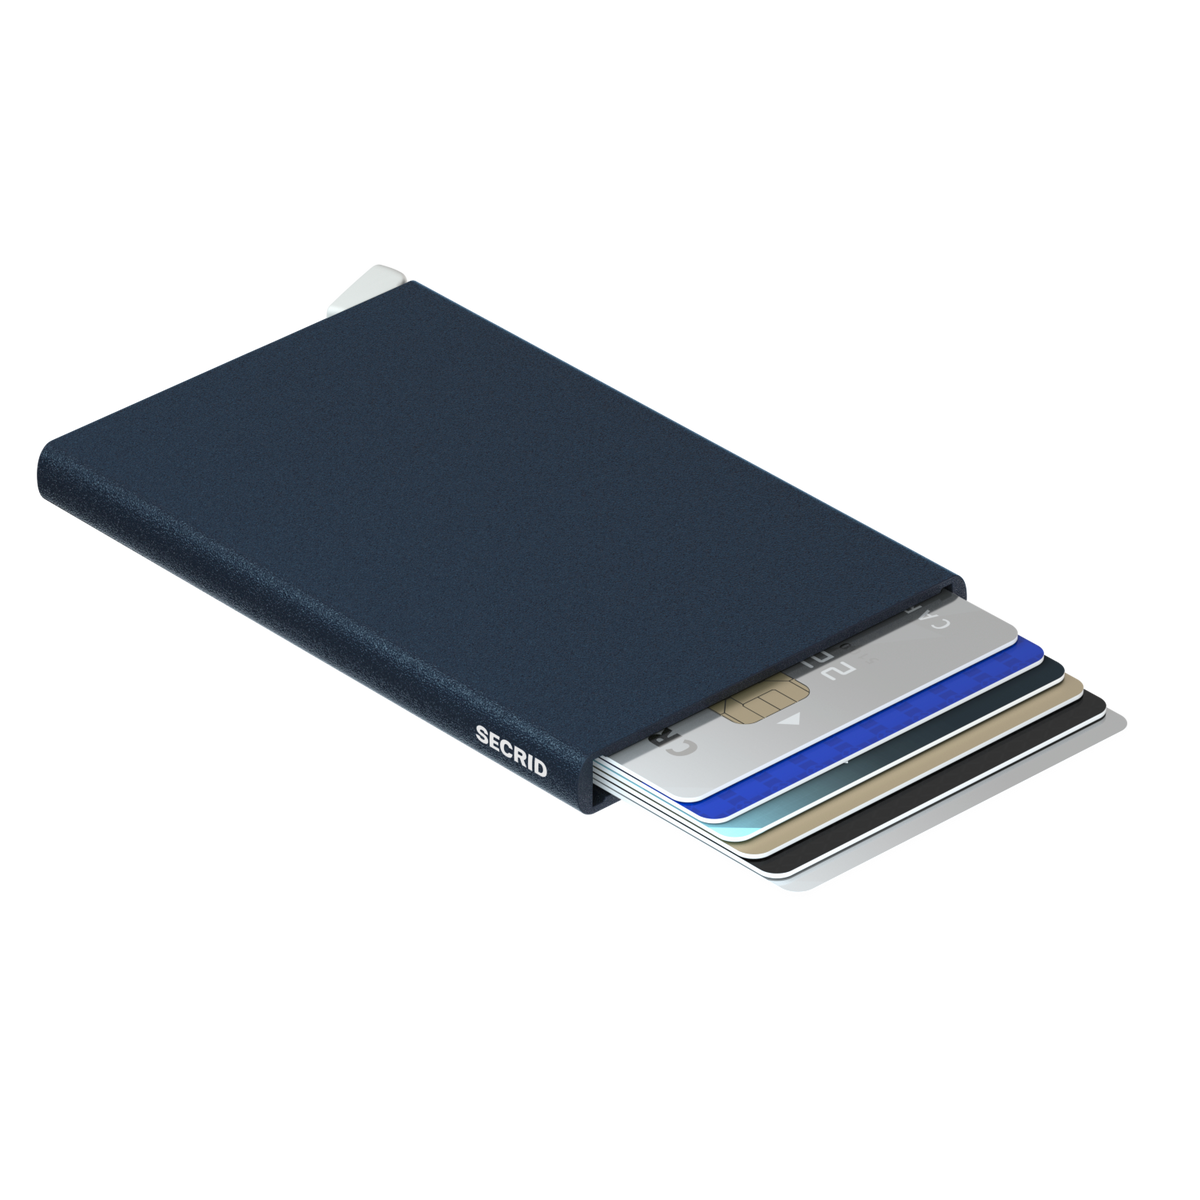 Secrid Cardprotector (Night Blue)